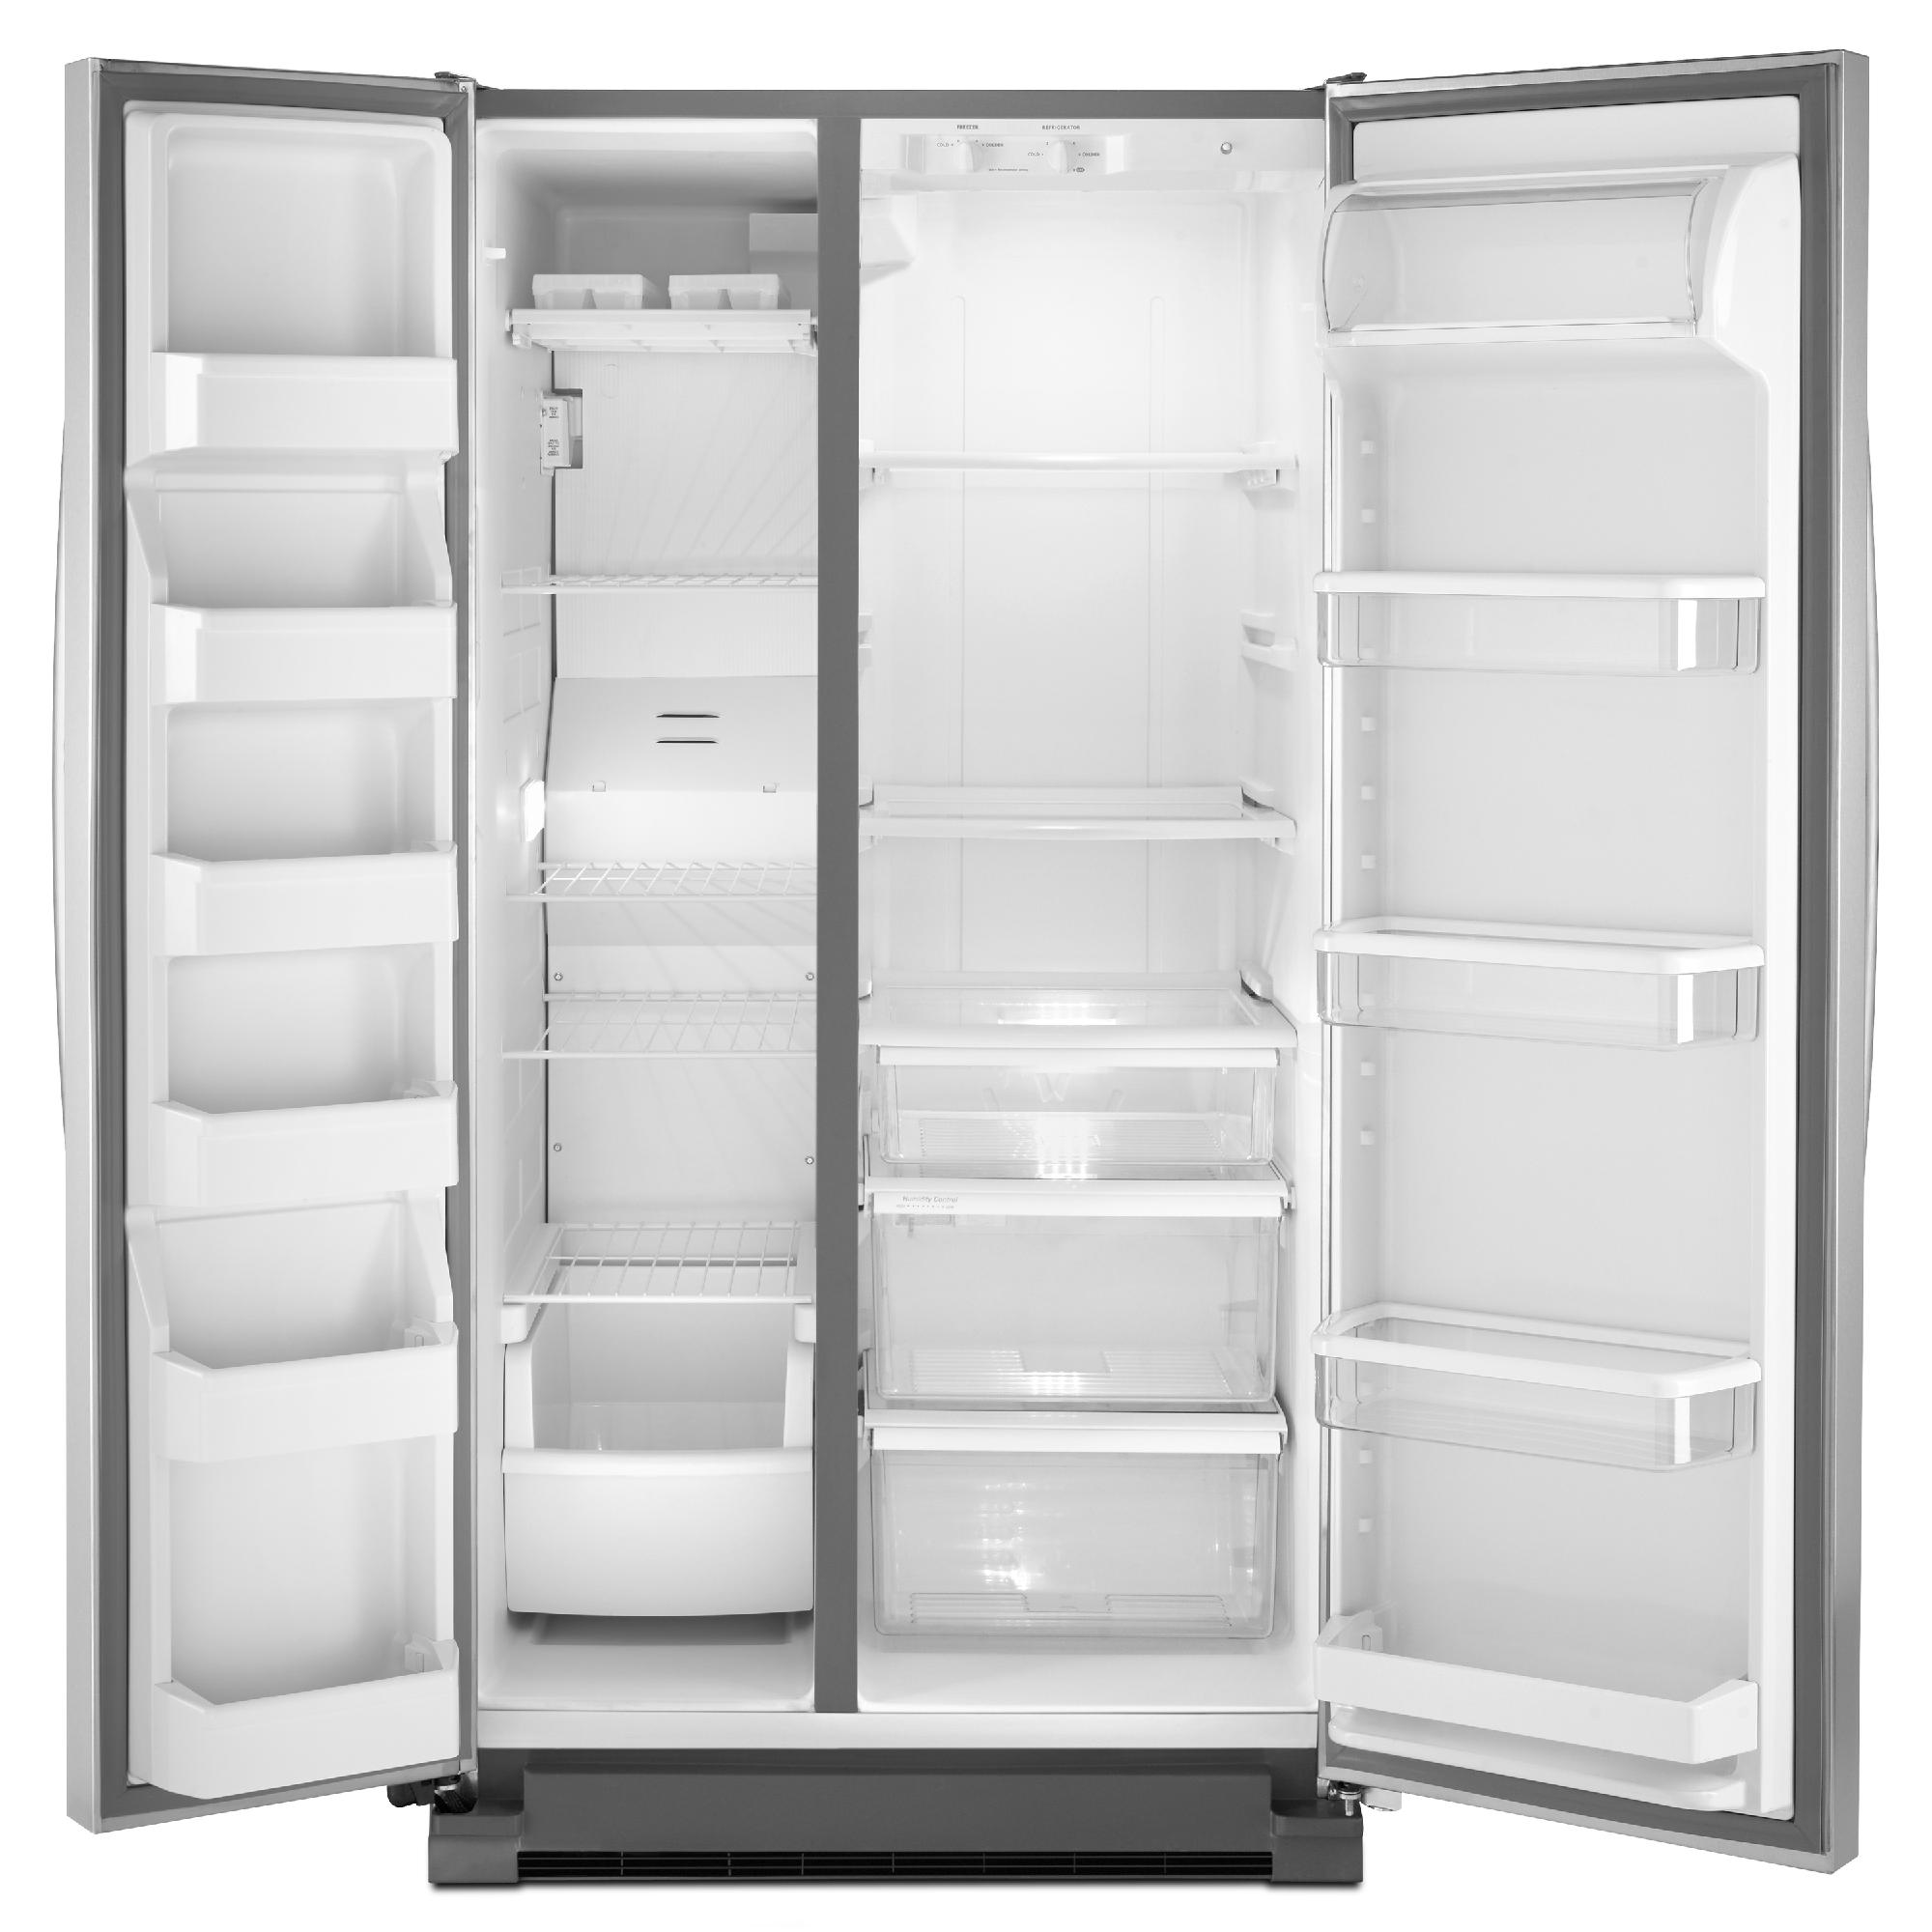 Whirlpool 24.9 cu. ft. Side-by-Side Refrigerator w/ Accu-Chill™ Temperature Management - Stainless Steel